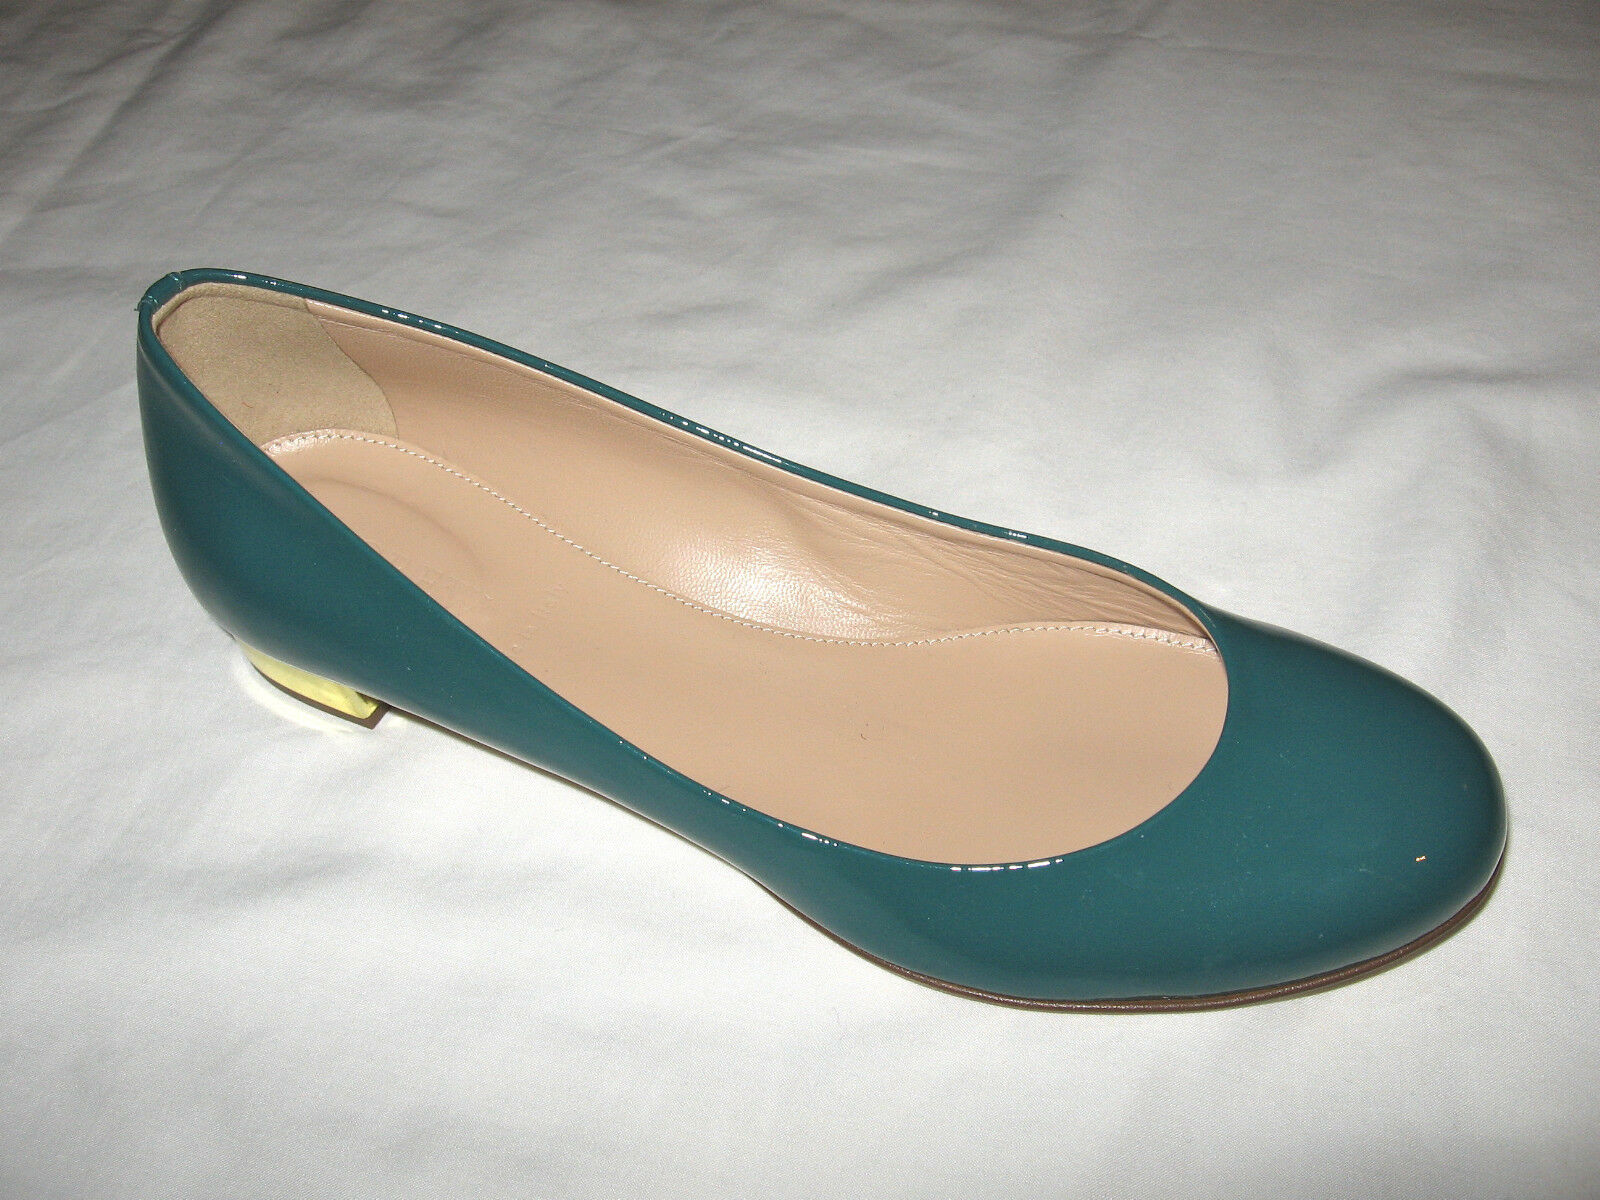 J.Crew New In Box Janey Patent Flats Color:Dusty Jade Retail:$178+Tax